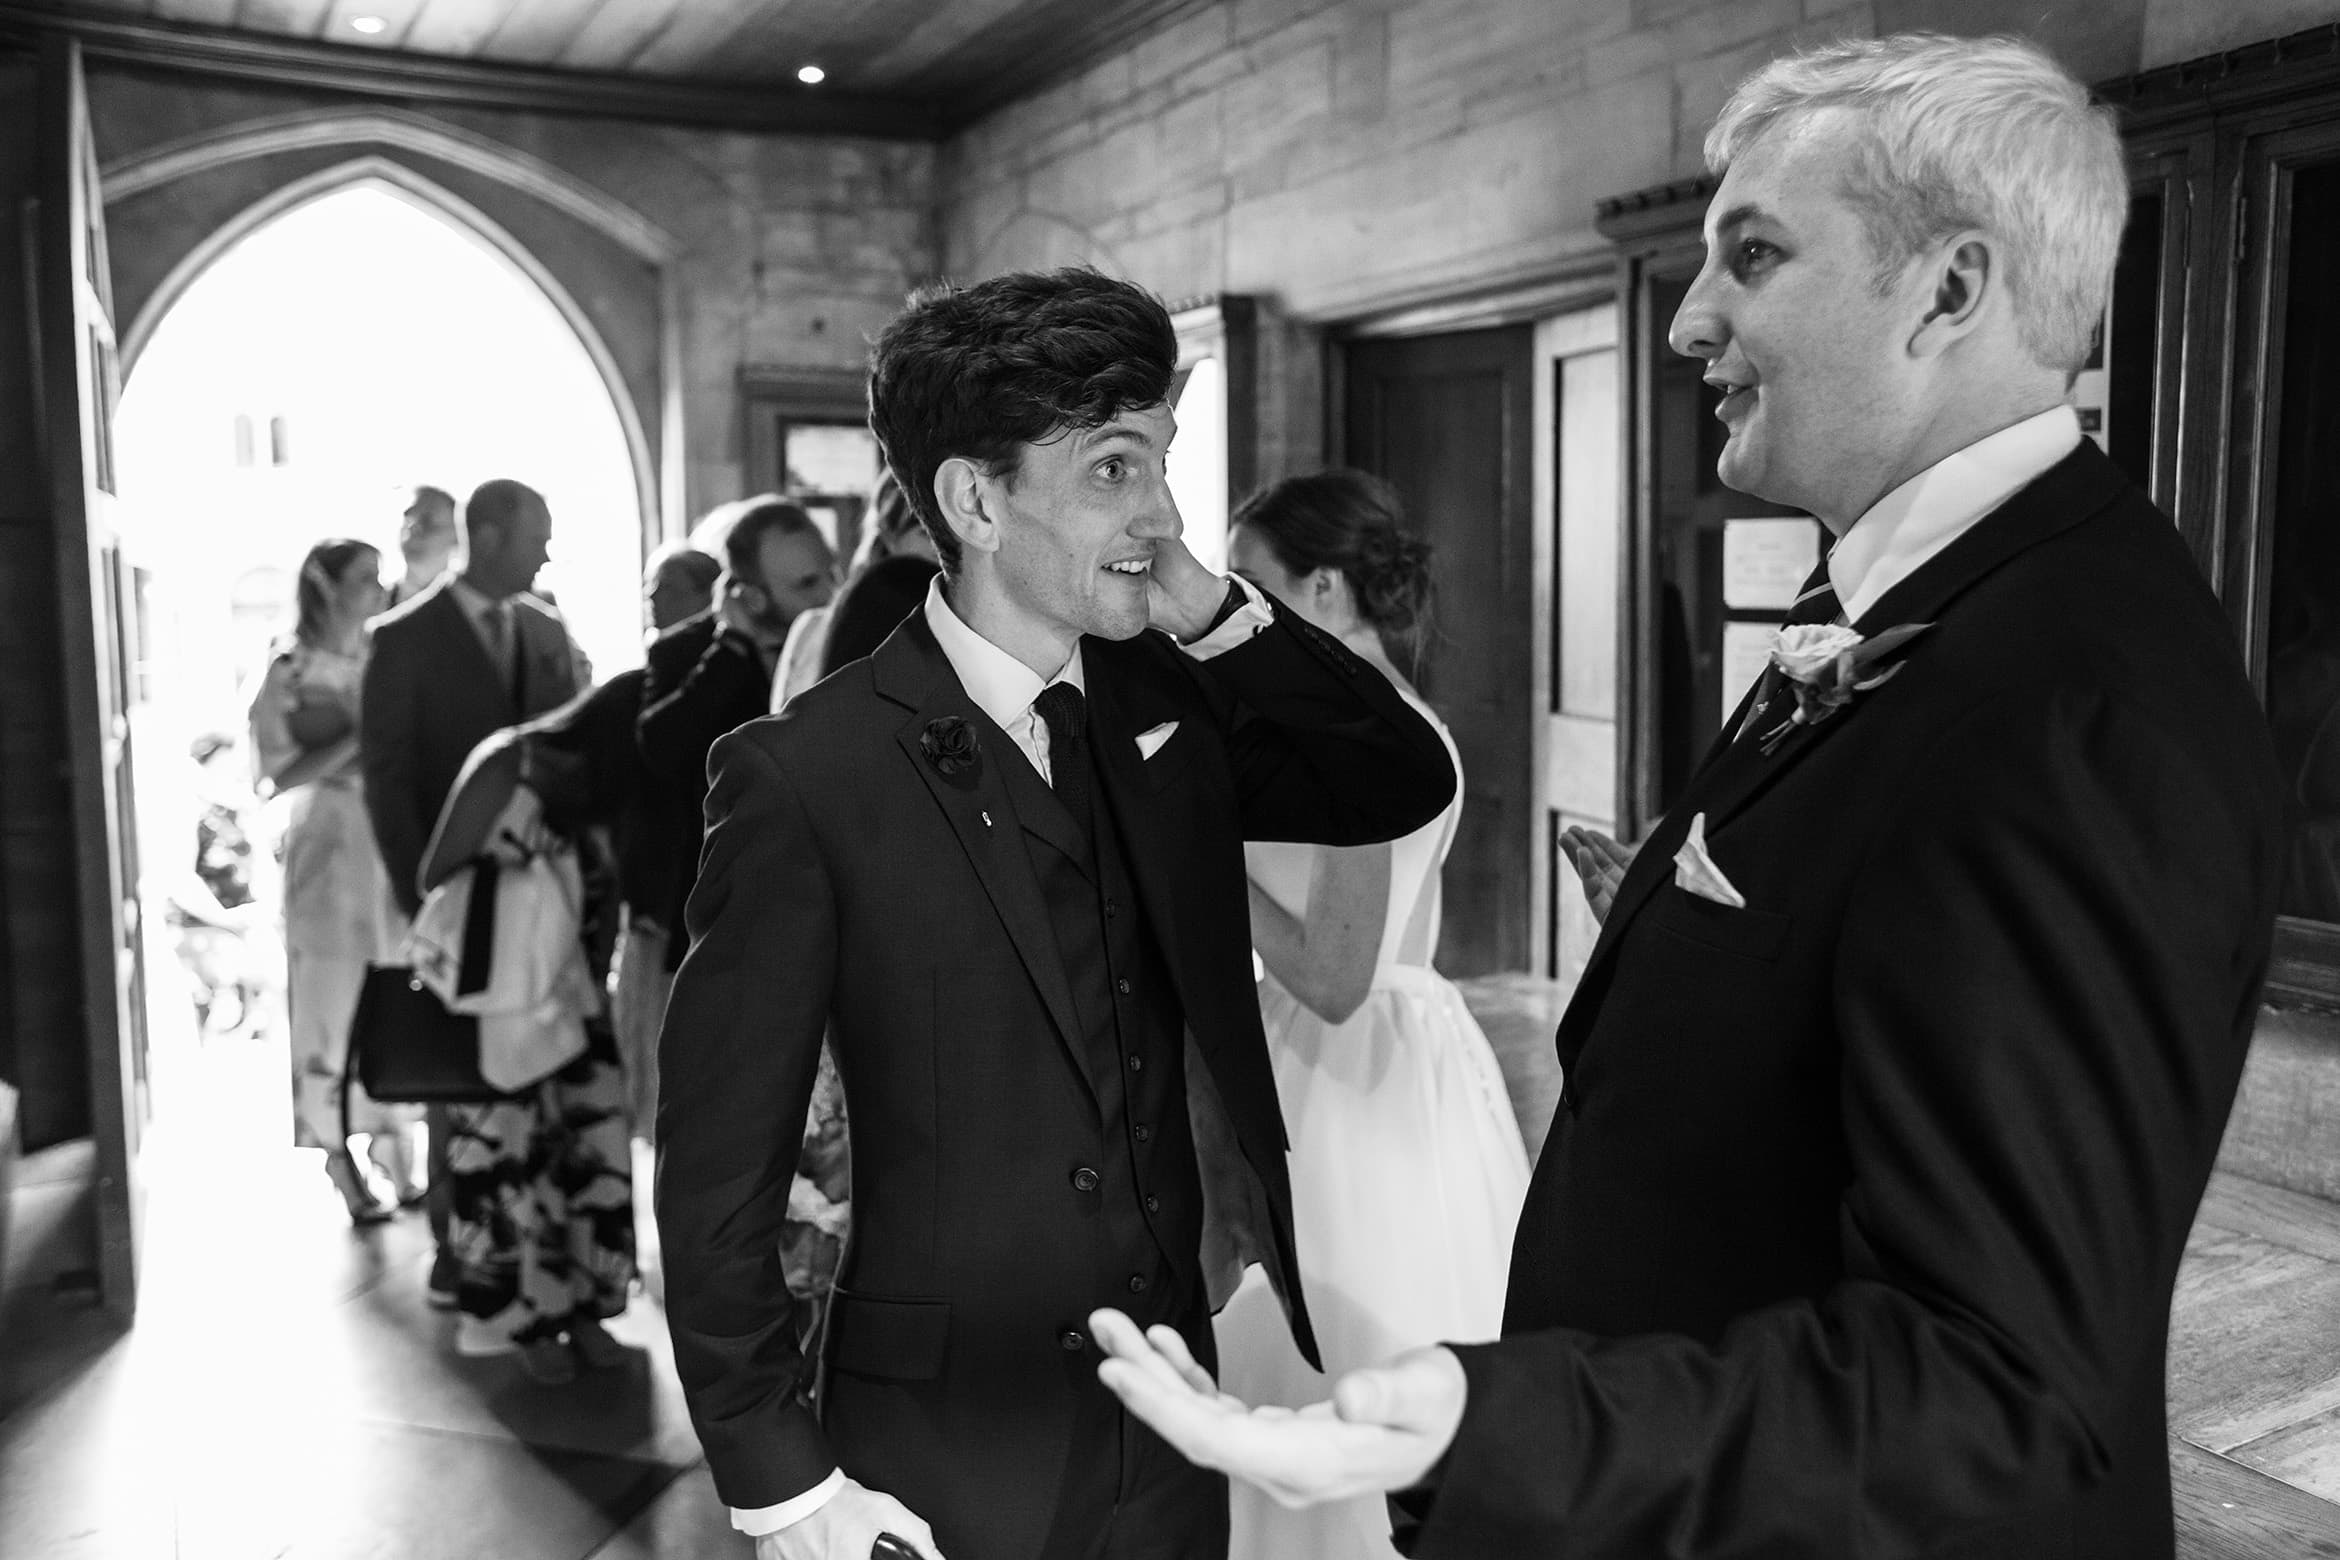 the groom greets a wedding guest